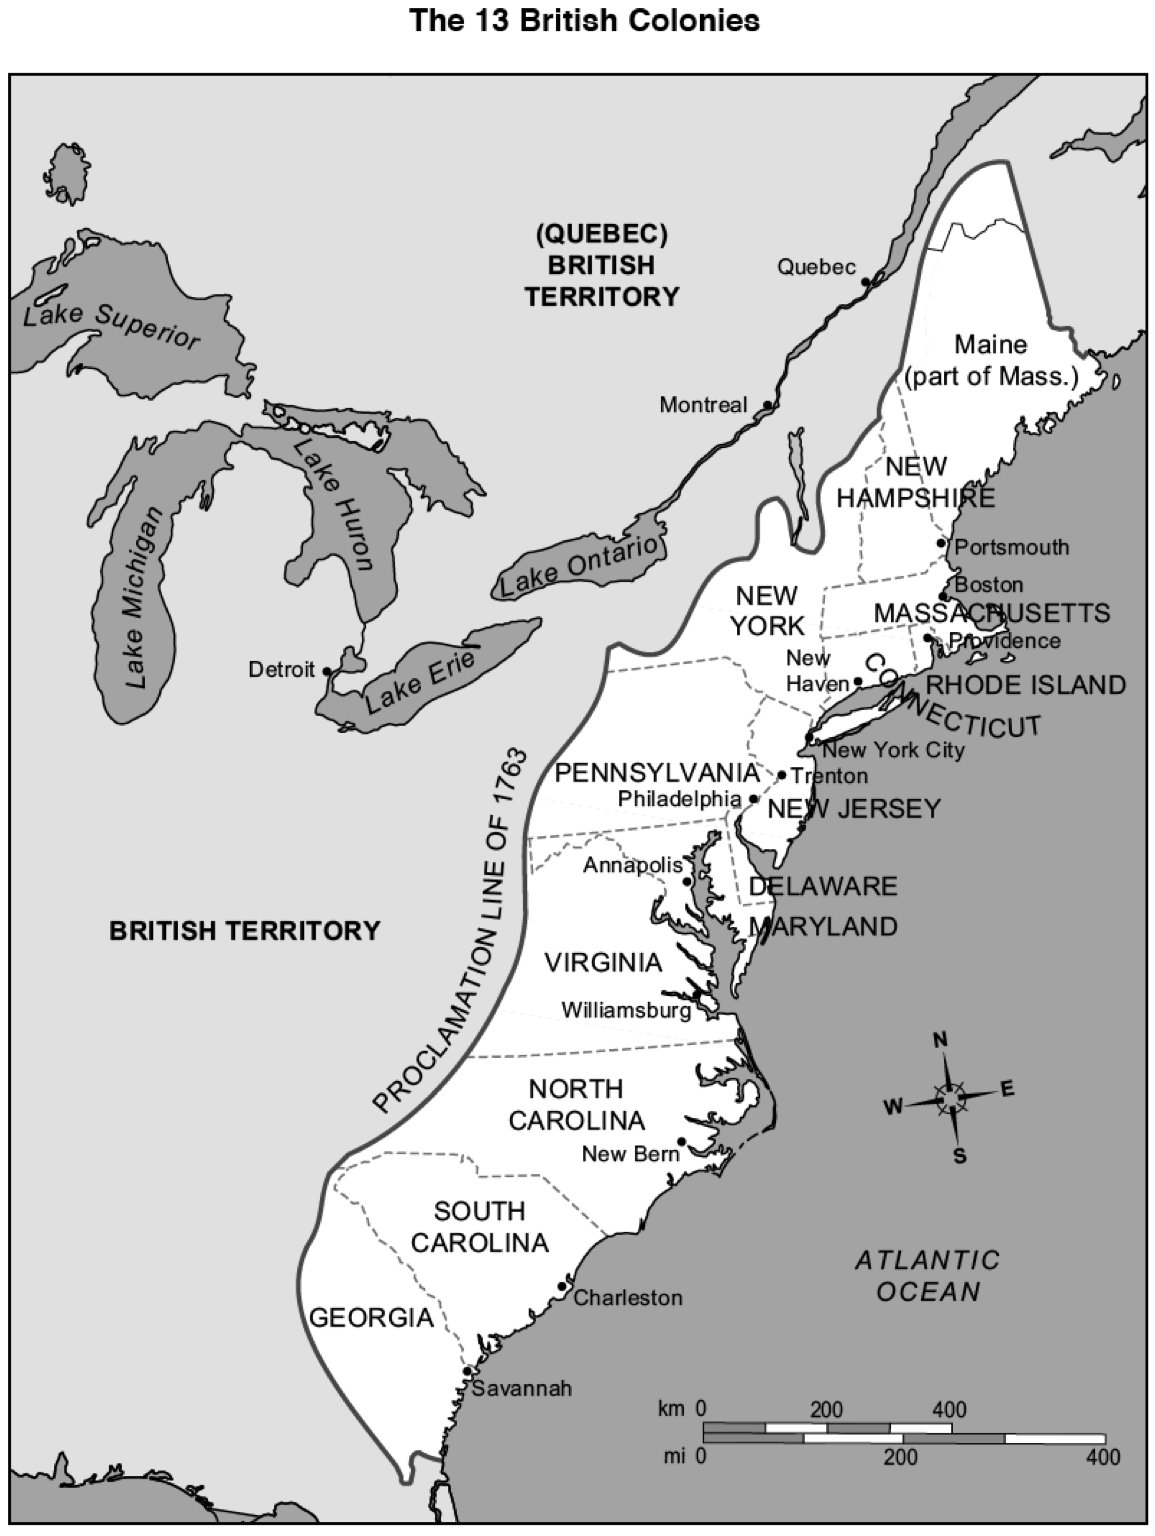 hight resolution of 13 colonies map - Google Search   13 colonies map